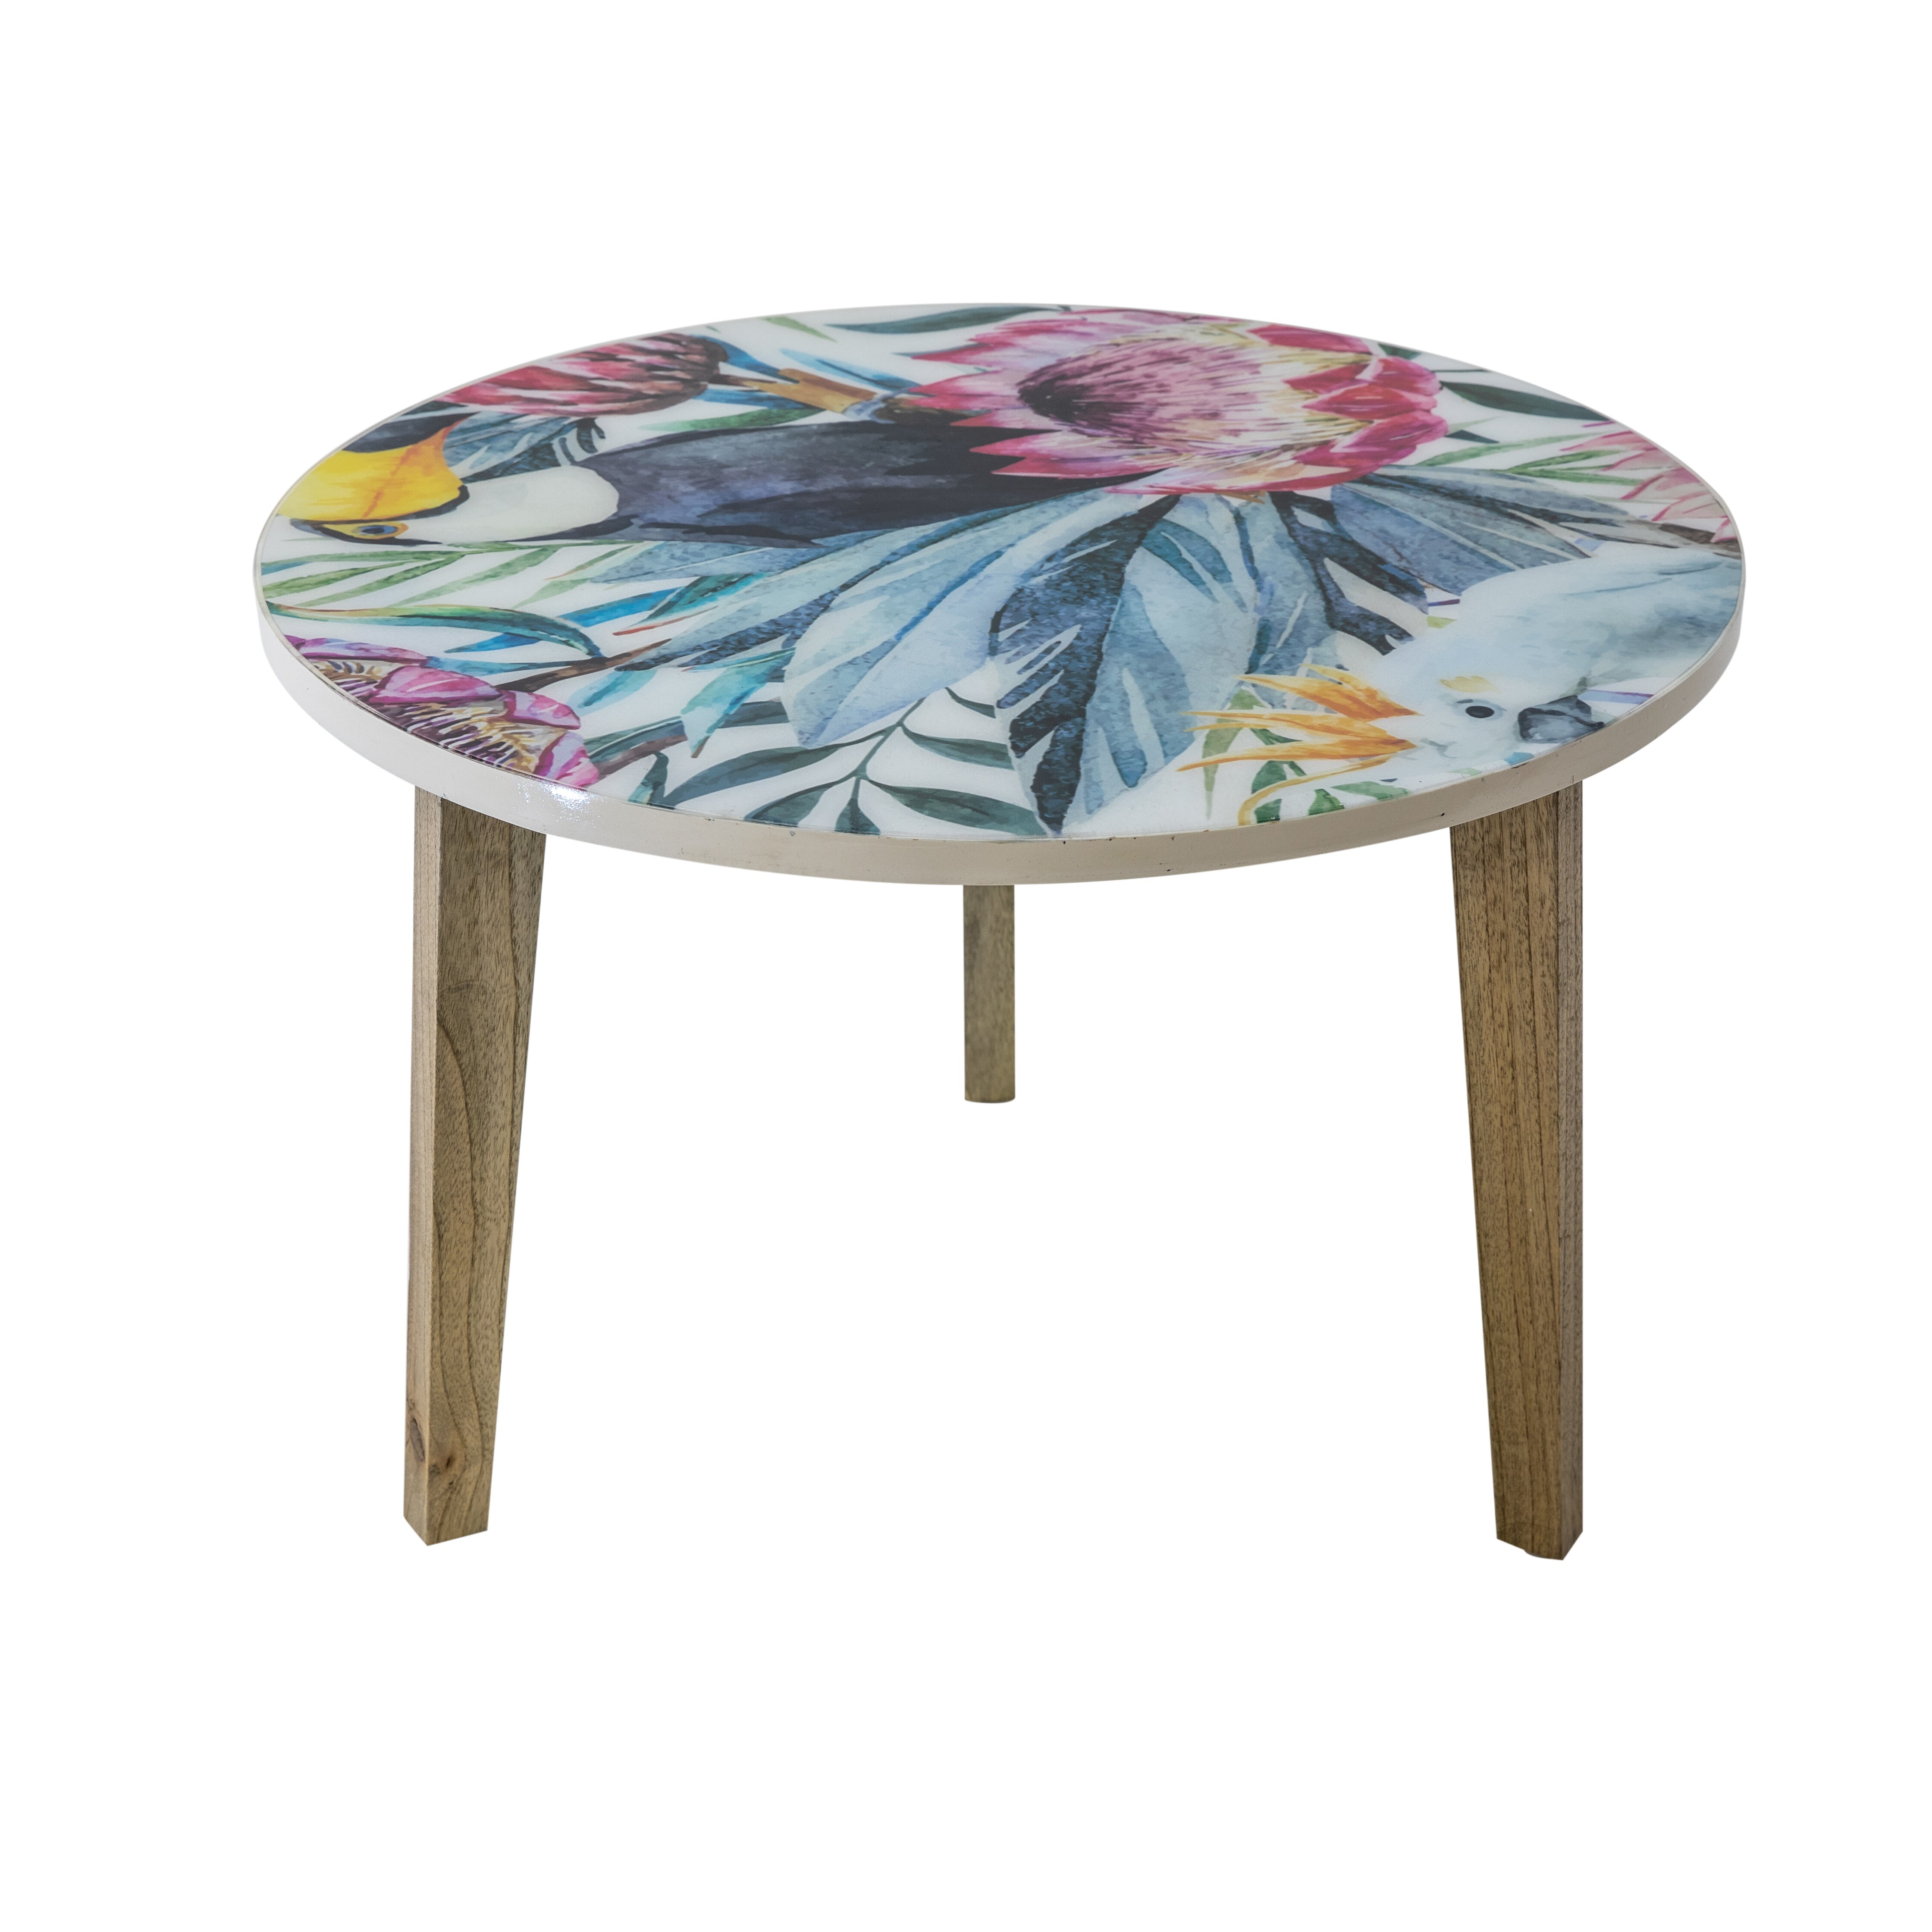 Round Lamp Table Protea Print - Large